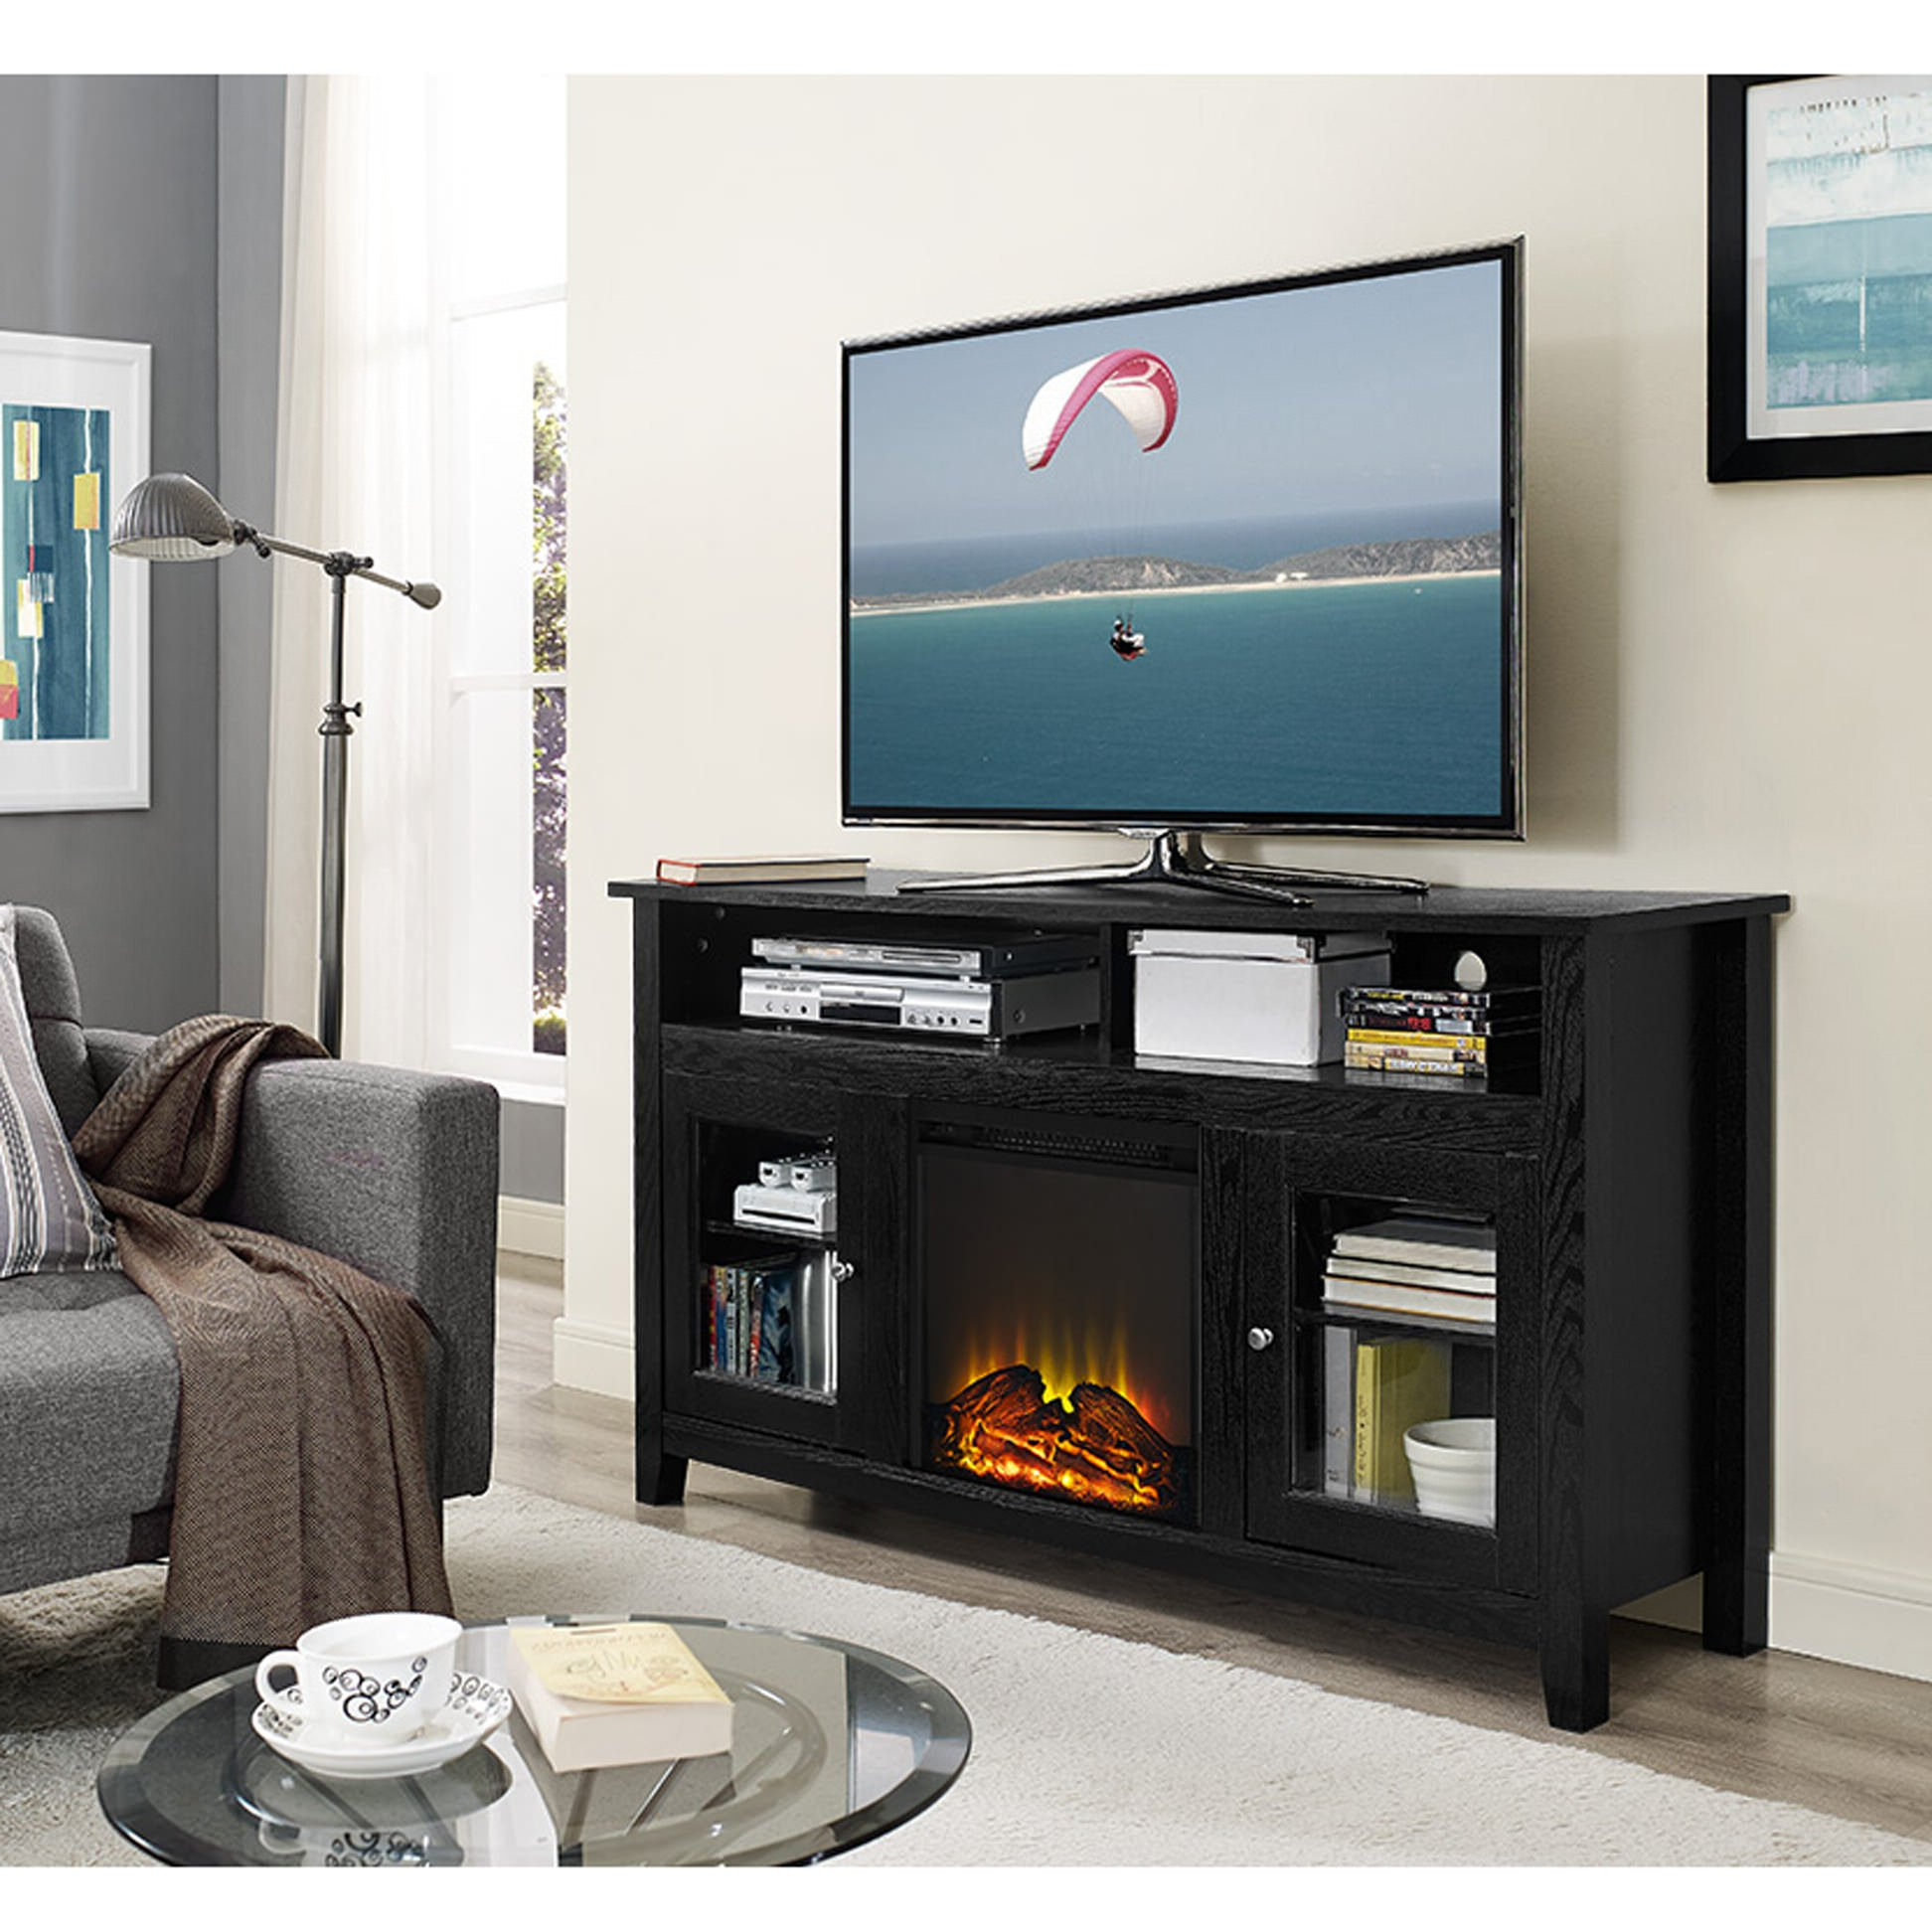 Wasatch 58 Inch Highboy Fireplace Tv Stand – Black With Modern Black Floor Glass Tv Stands For Tvs Up To 70 Inch (View 14 of 20)